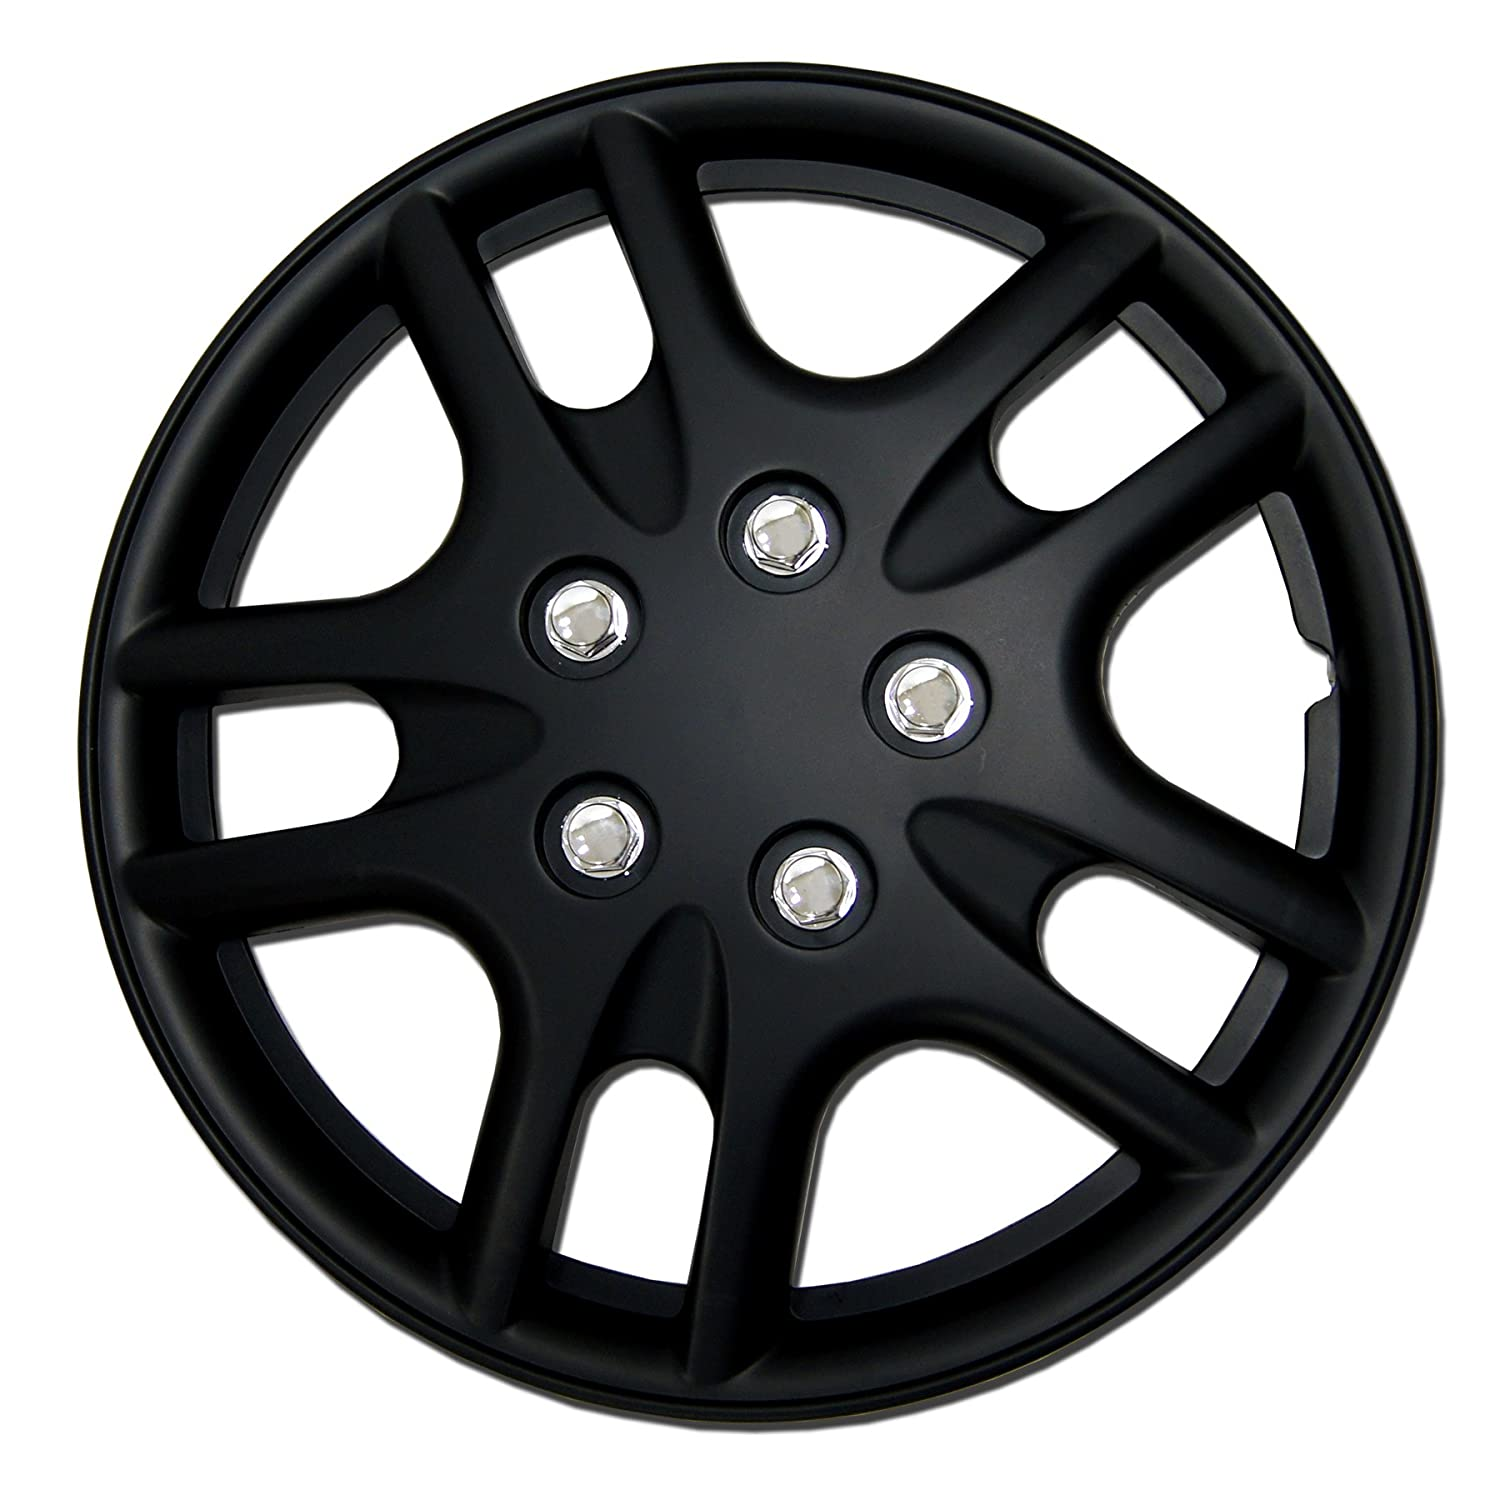 15-Inches Style 721 Snap-On Pop-On Tuningpros WC3-15-721-B Pack of 4 Hubcaps Type Matte Black Wheel Covers Hub-caps